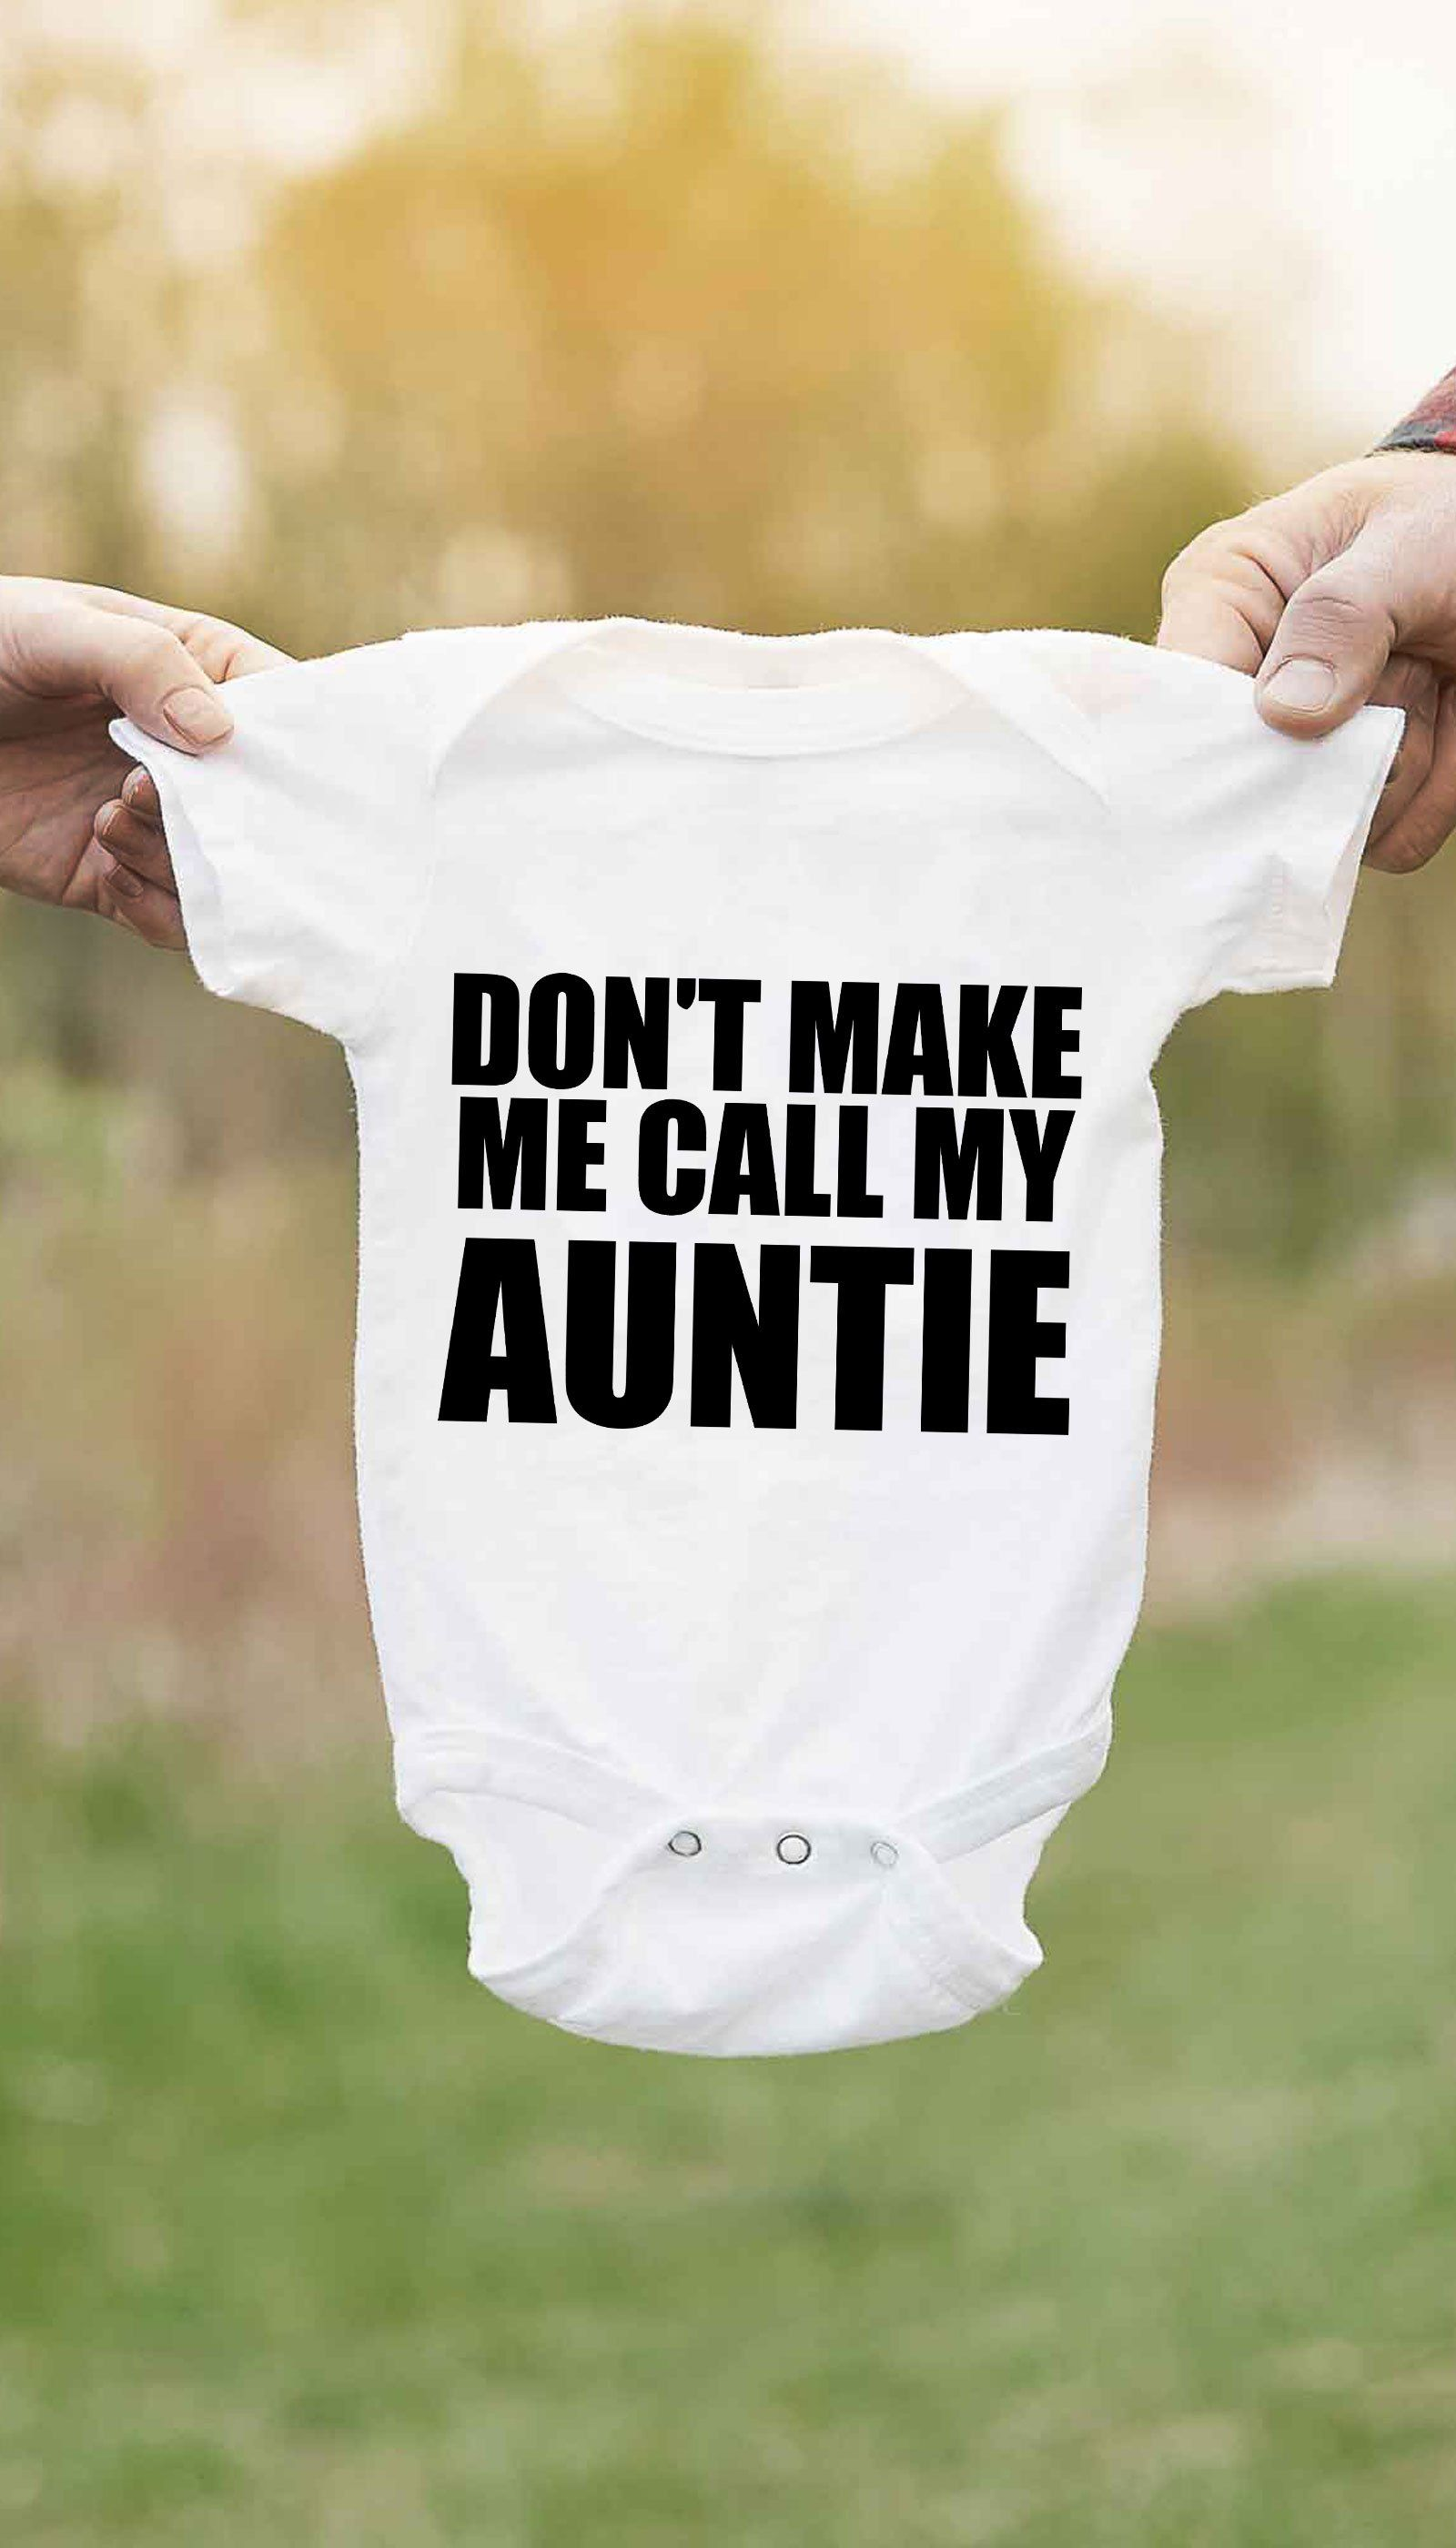 c2f1eeb26 Don't Make Me Call My Auntie Funny Infant Onesie | Sarcastic Baby ...